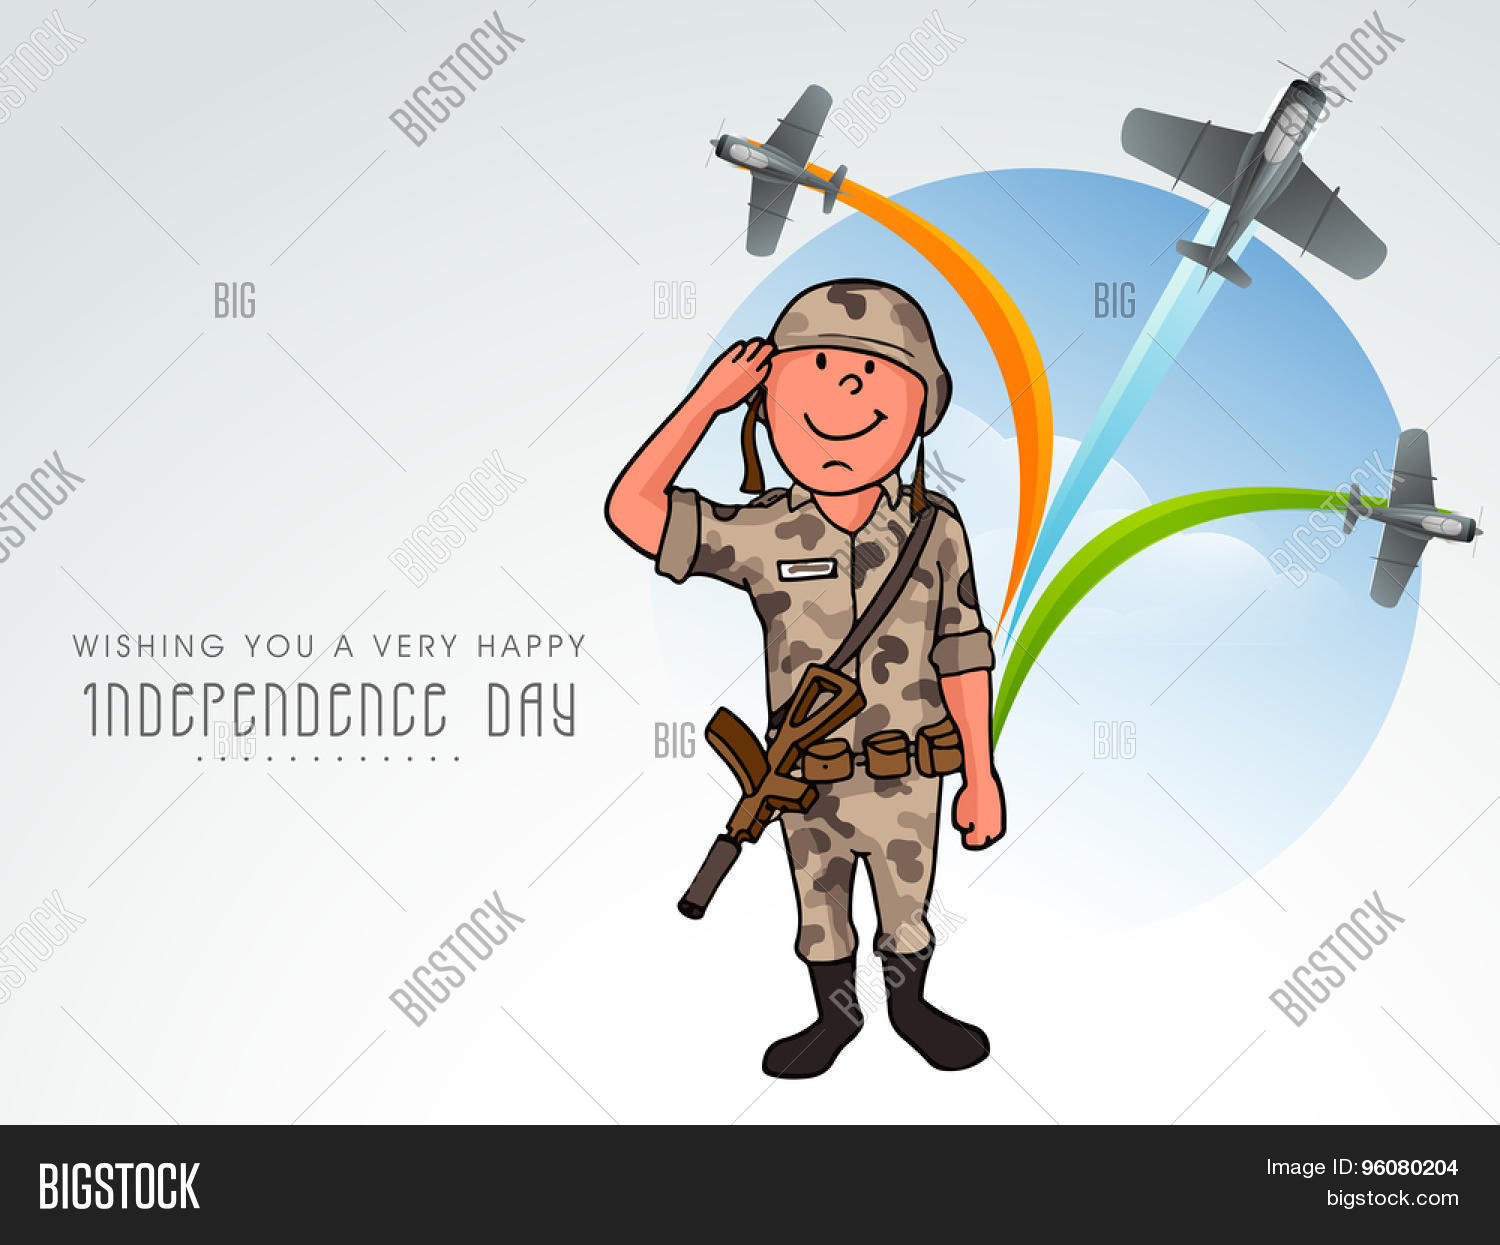 Independence Day Army Independence Day Wallpapers 2016 With Indian